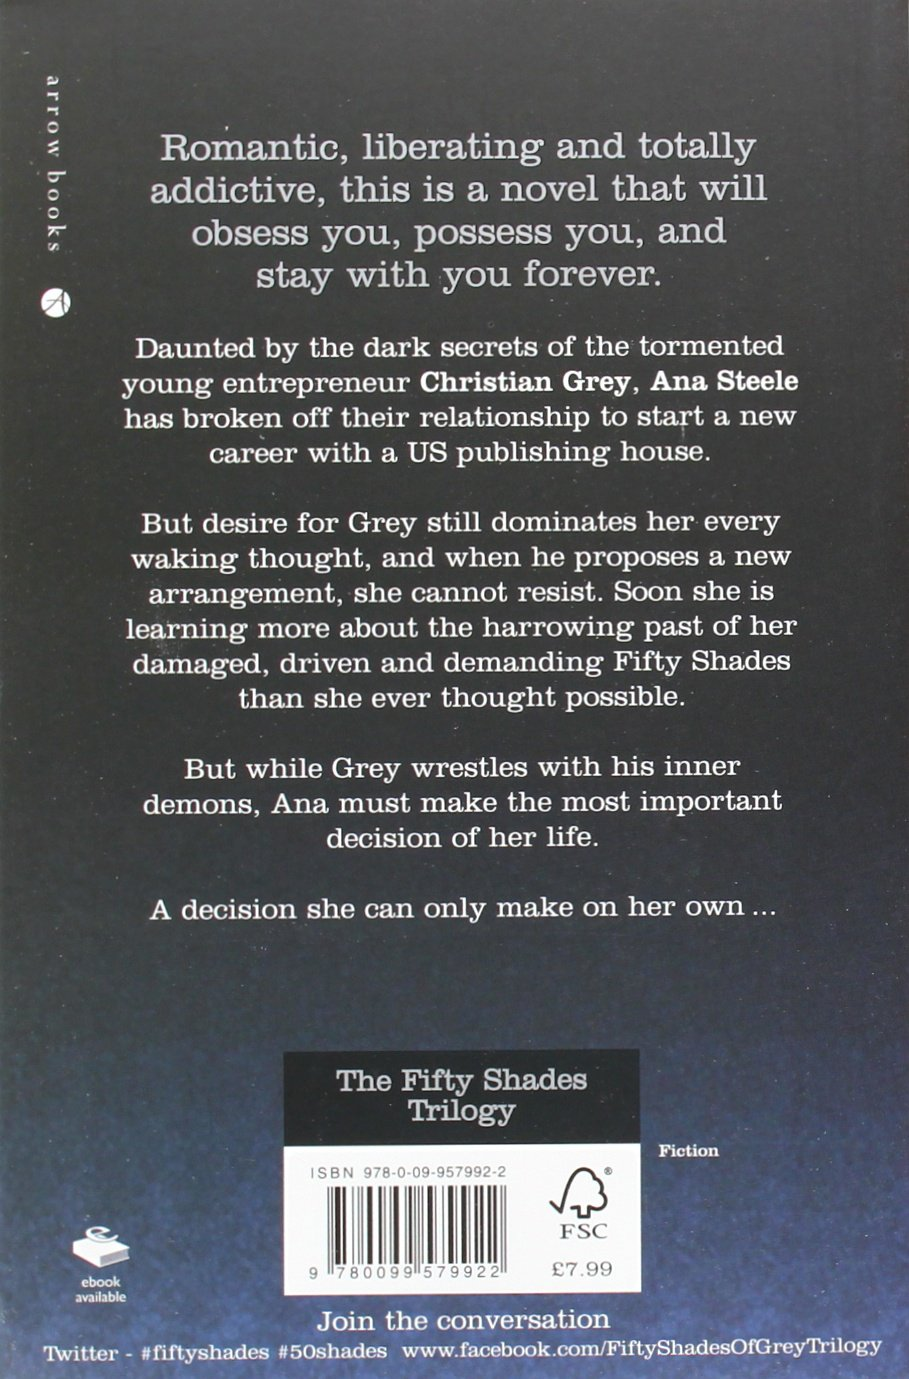 fifty shades trilogy boxed set co uk e l james fifty shades trilogy boxed set co uk e l james 9780099580577 books